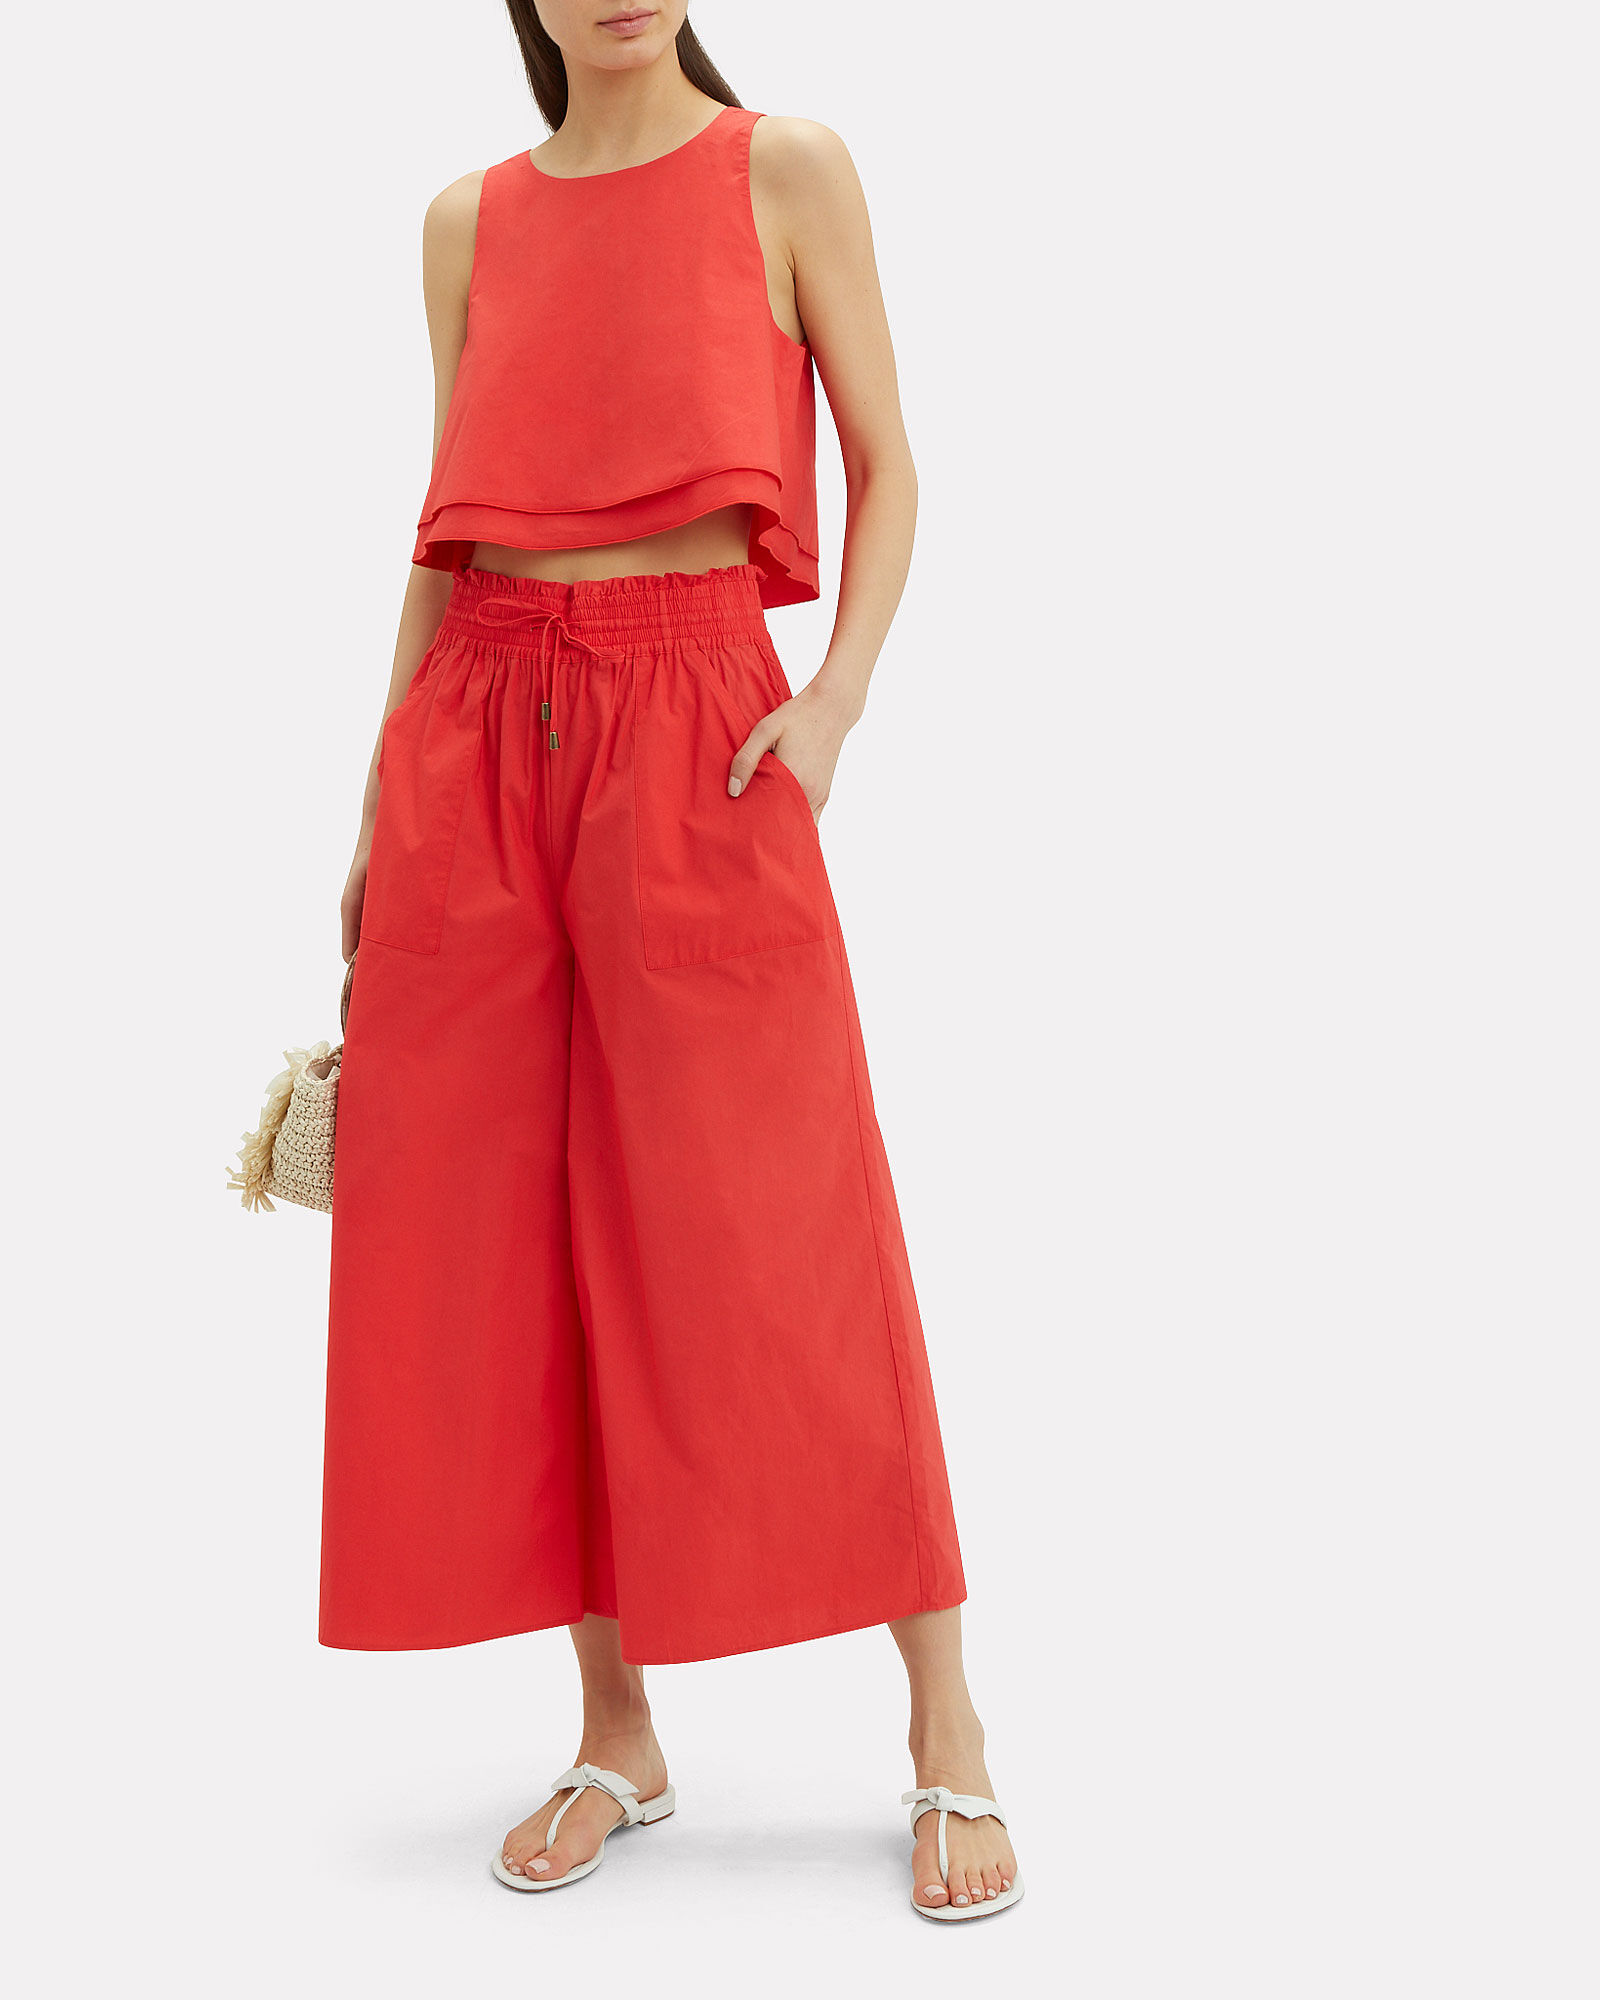 Galacia Red Culottes, RED, hi-res